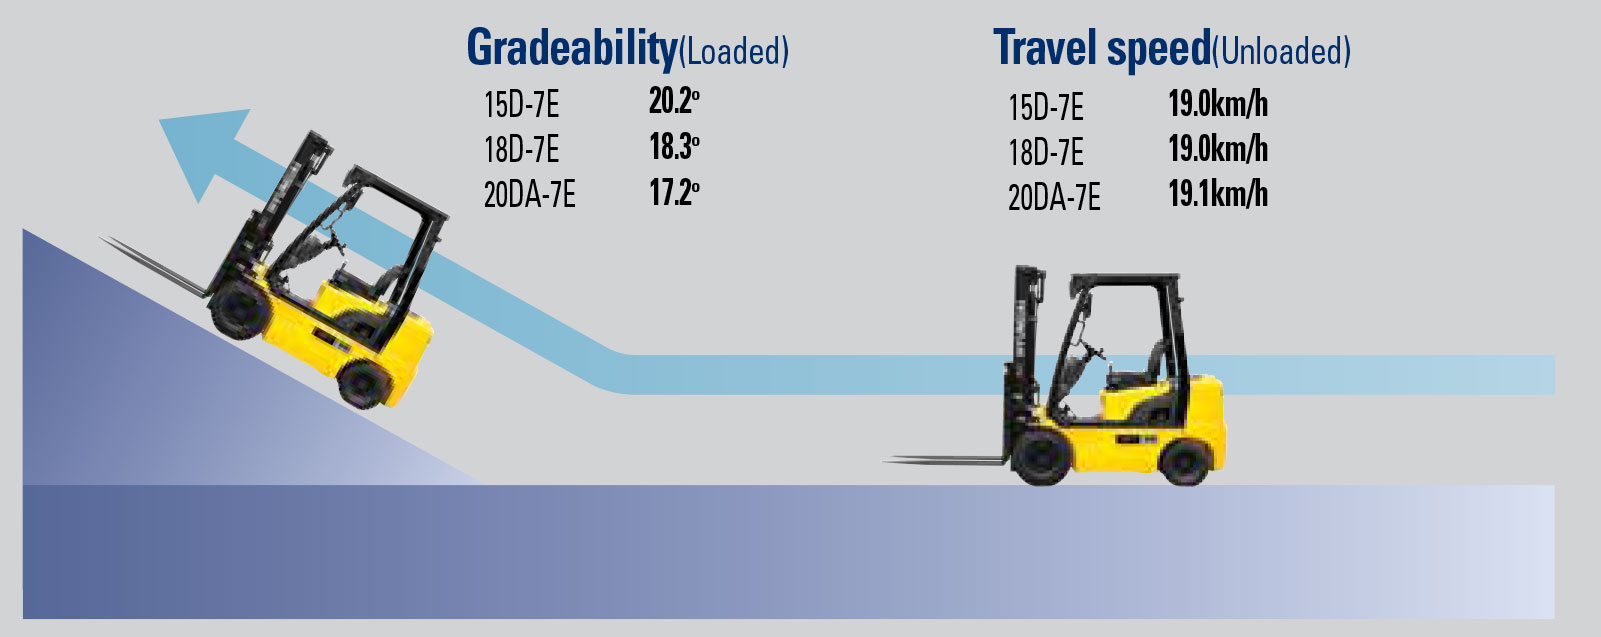 Faster travel speed & gradeability